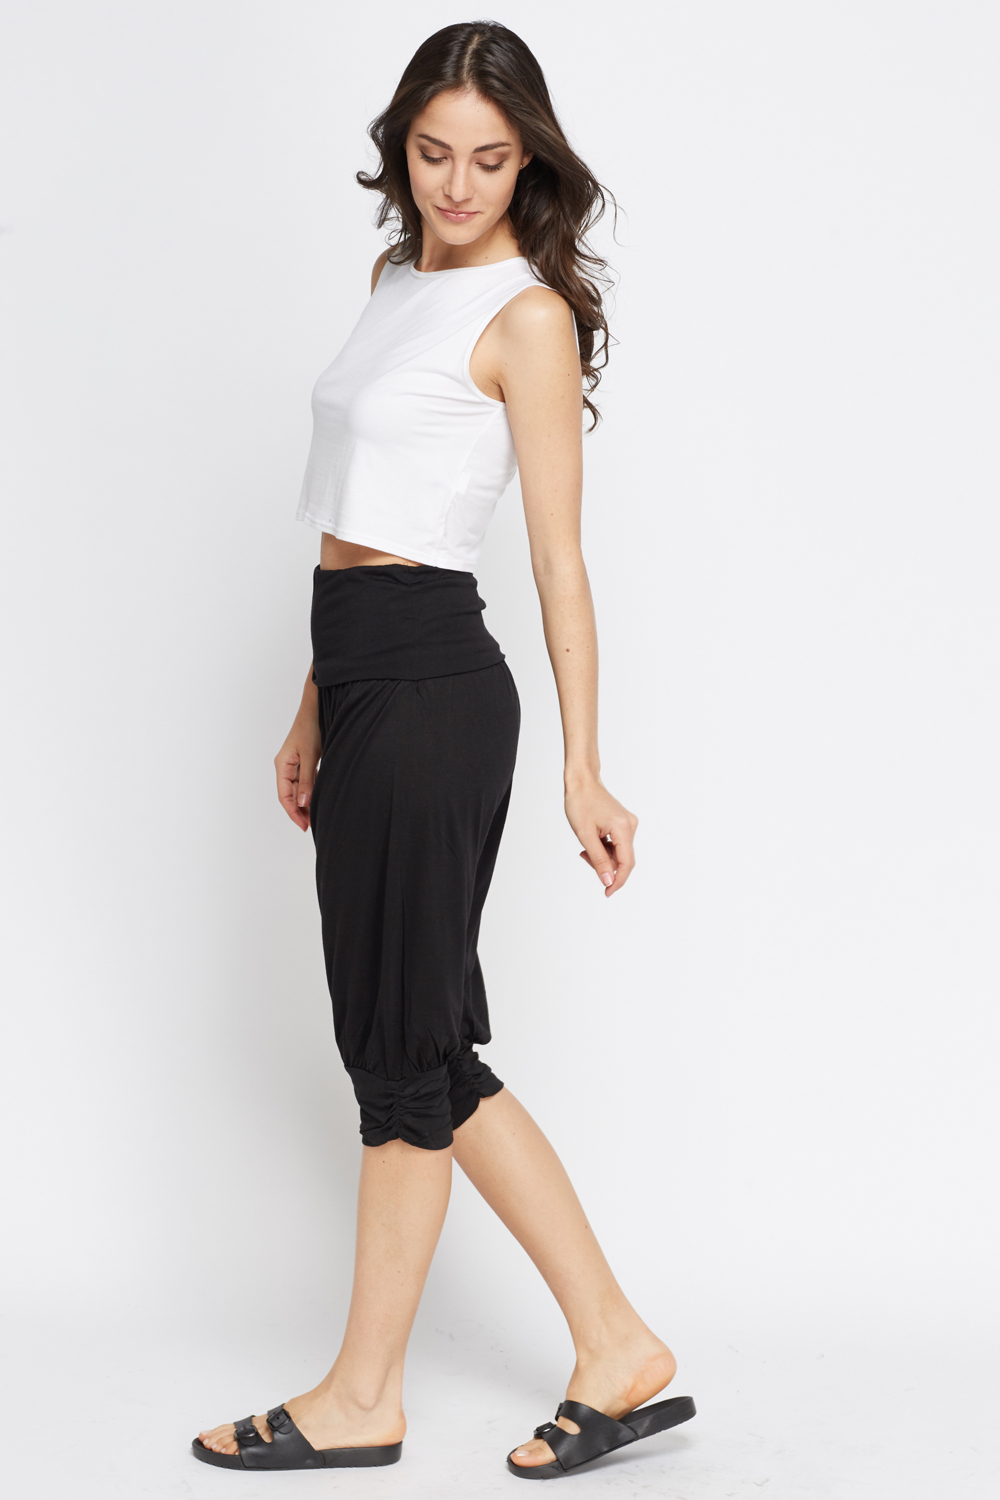 Discover cropped trousers with ASOS. From capri and cigarette pants to cropped flares in chino. Shop from our range of cropped trousers at ASOS.